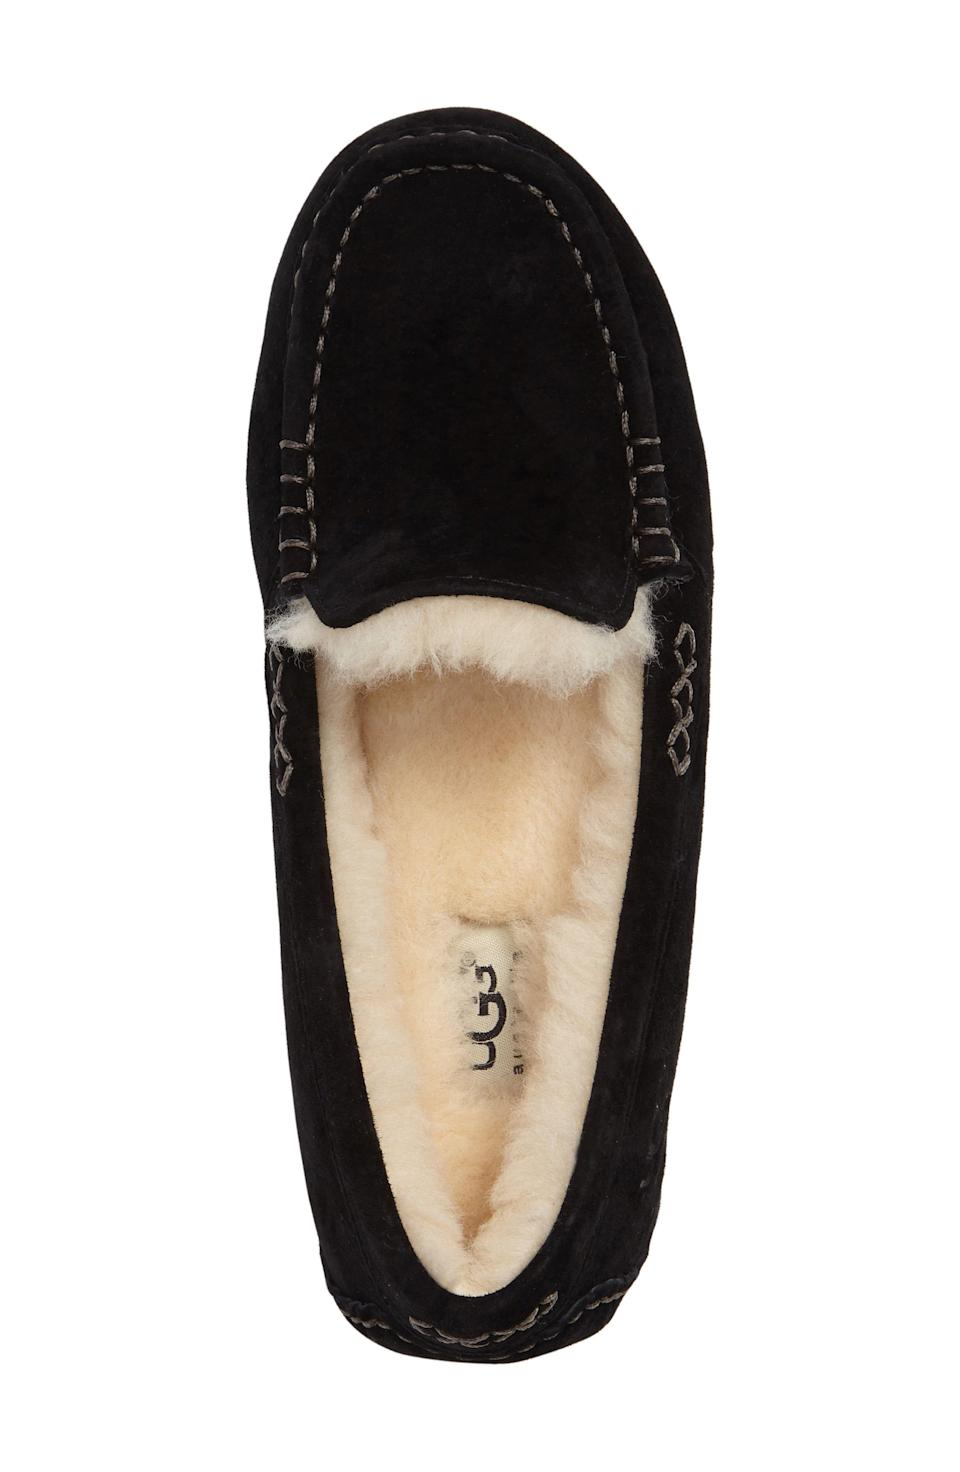 """<p><strong>Ugg</strong></p><p>nordstrom.com</p><p><strong>$74.96</strong></p><p><a href=""""https://go.redirectingat.com?id=74968X1596630&url=https%3A%2F%2Fwww.nordstrom.com%2Fs%2Fugg-ansley-water-resistant-slipper-women%2F3164992&sref=https%3A%2F%2Fwww.harpersbazaar.com%2Ffashion%2Ftrends%2Fg24061584%2Fbest-gifts-for-friends-ideas%2F"""" rel=""""nofollow noopener"""" target=""""_blank"""" data-ylk=""""slk:Shop Now"""" class=""""link rapid-noclick-resp"""">Shop Now</a></p><p>Because it's truly cozy season.</p>"""